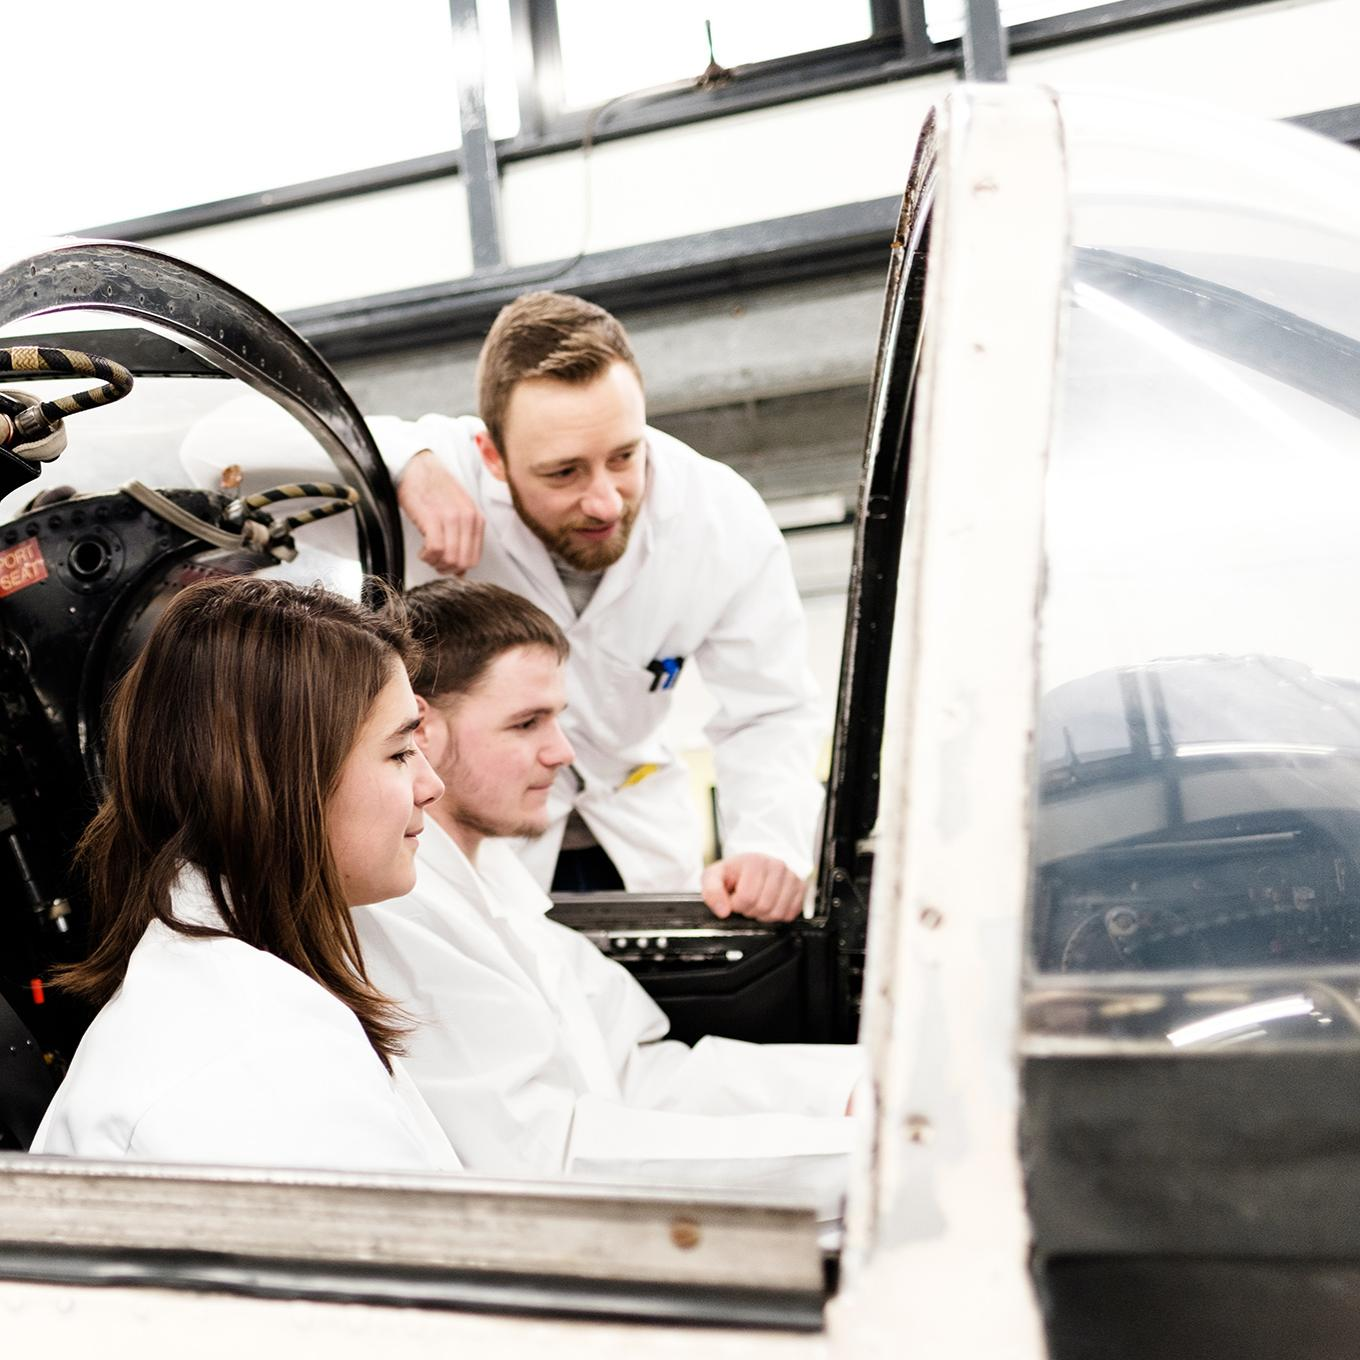 Two students sitting in the flight simulator, while another student leans in to look at the screens